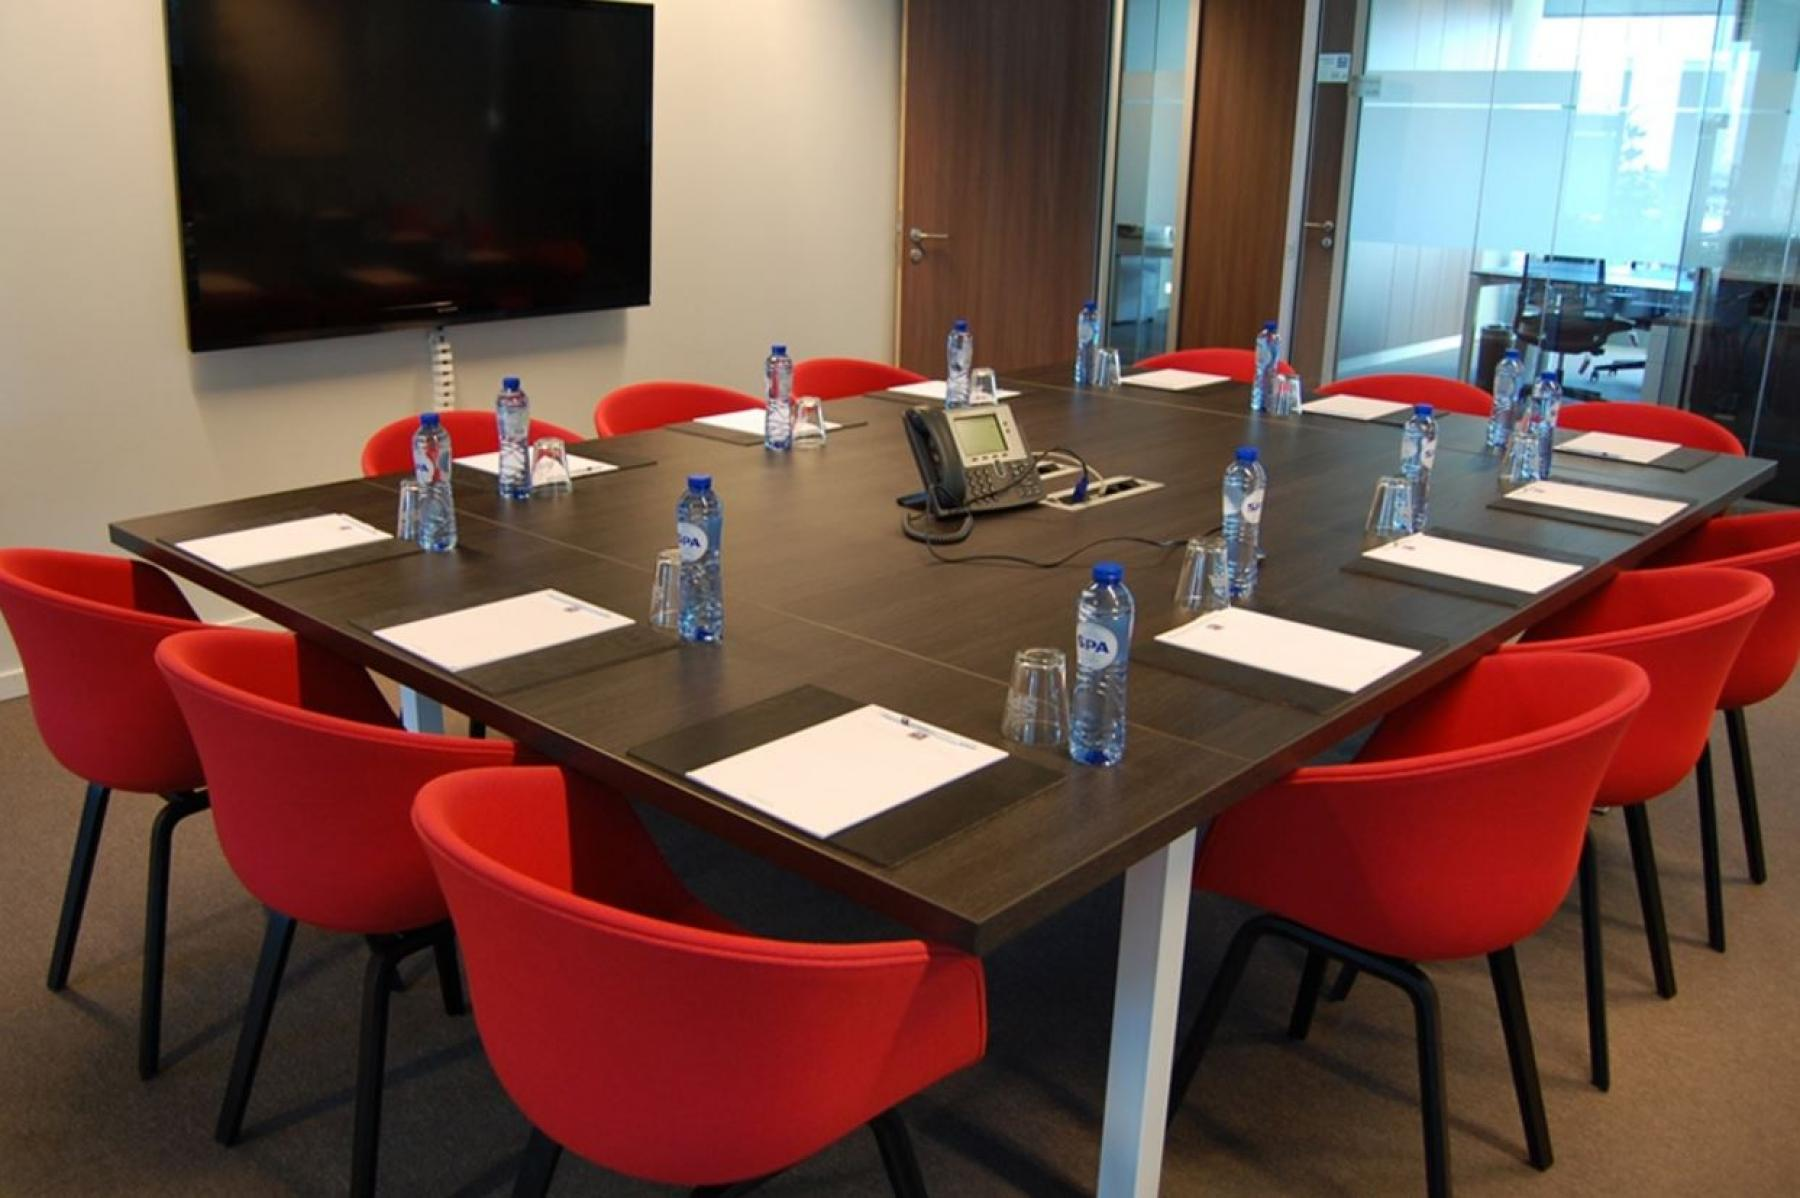 the big meeting room in the building